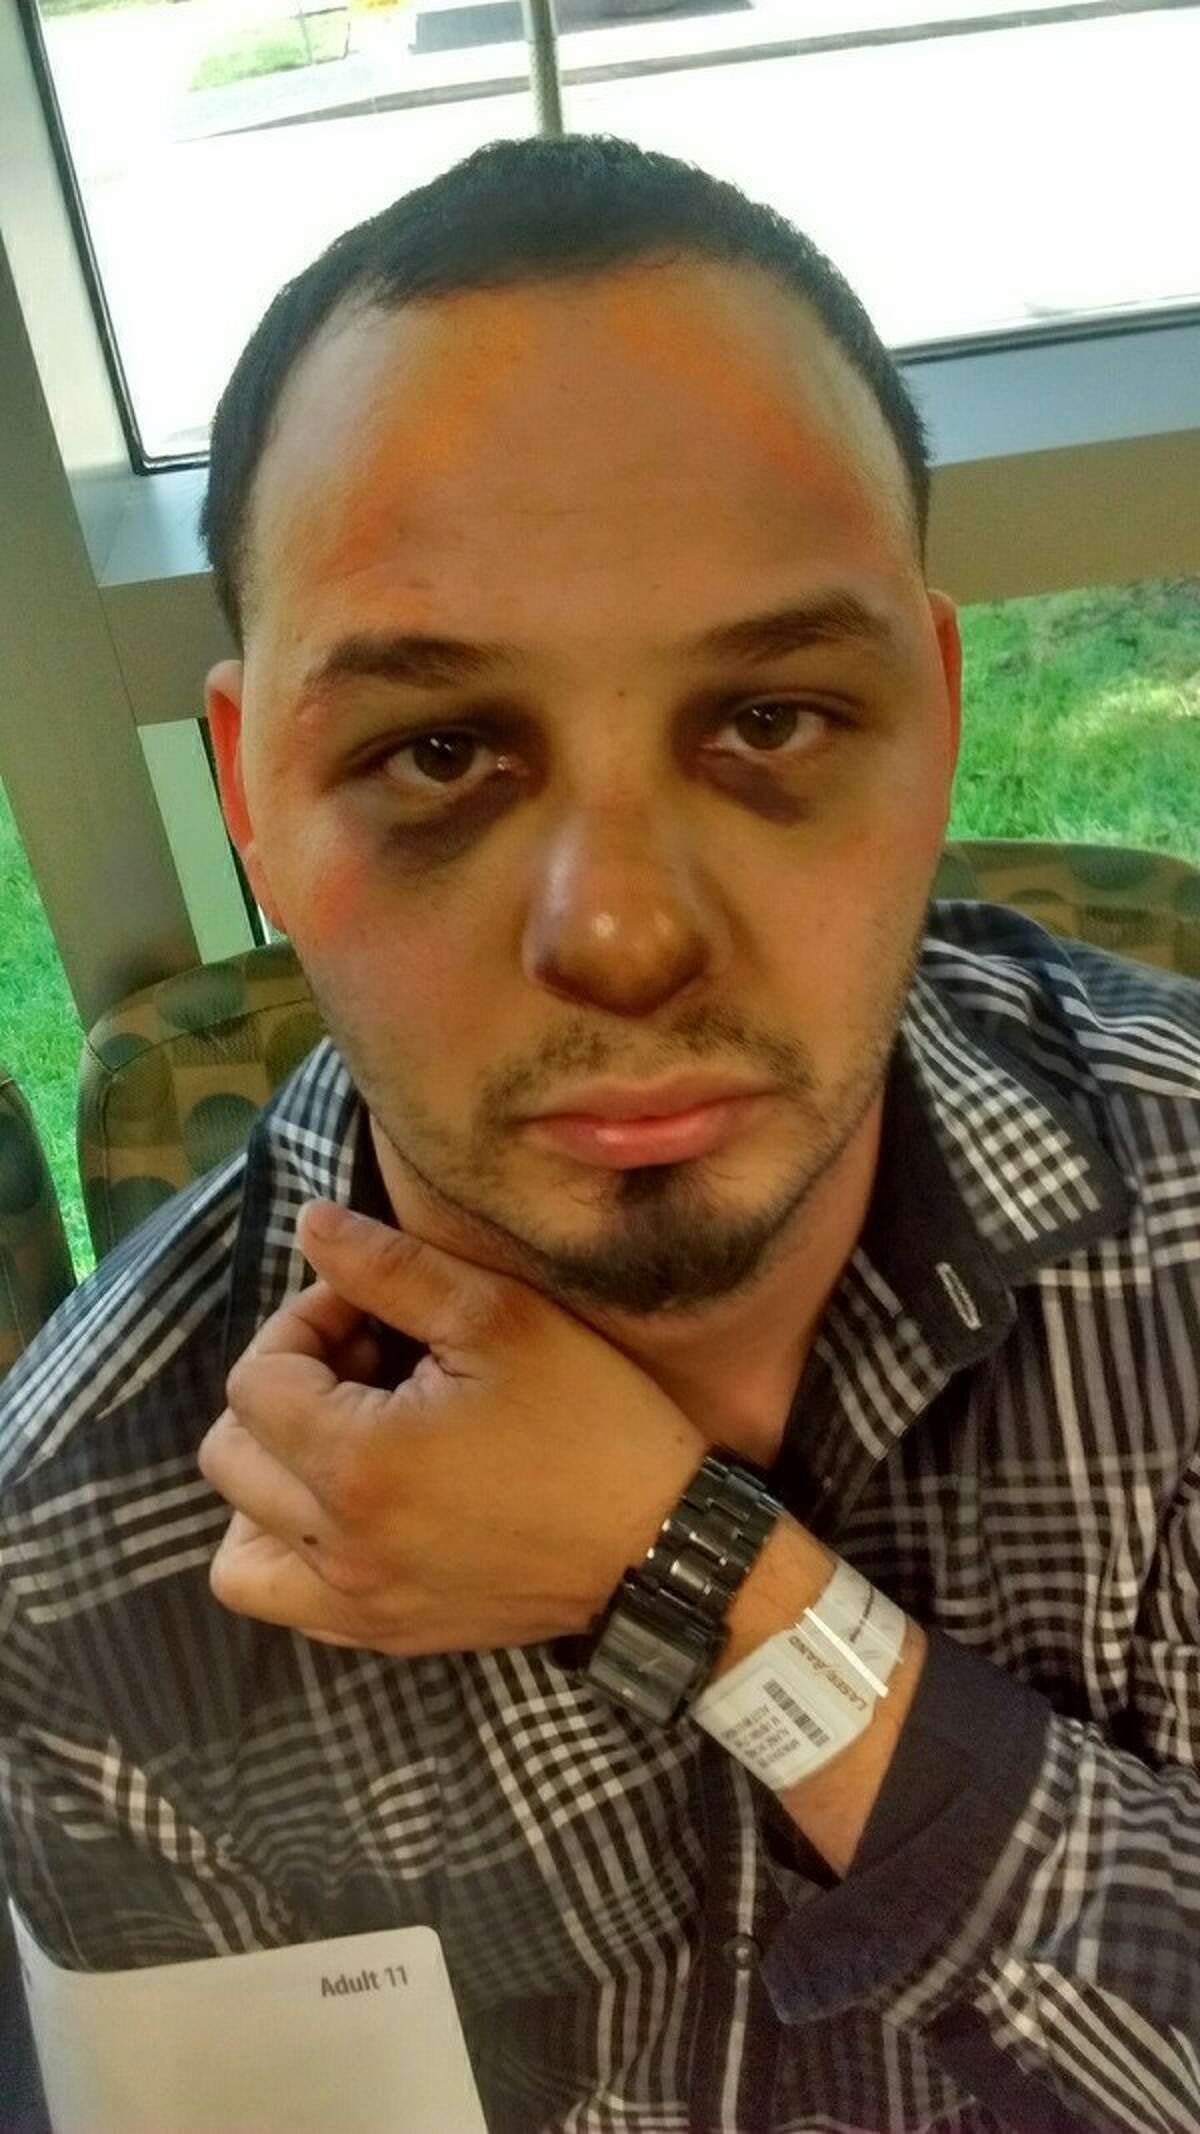 Photos show Michael Alaniz four days after he says he was beating in the Harris County jail by two jailers. A lawsuit was announced Friday, May 27, 2016.